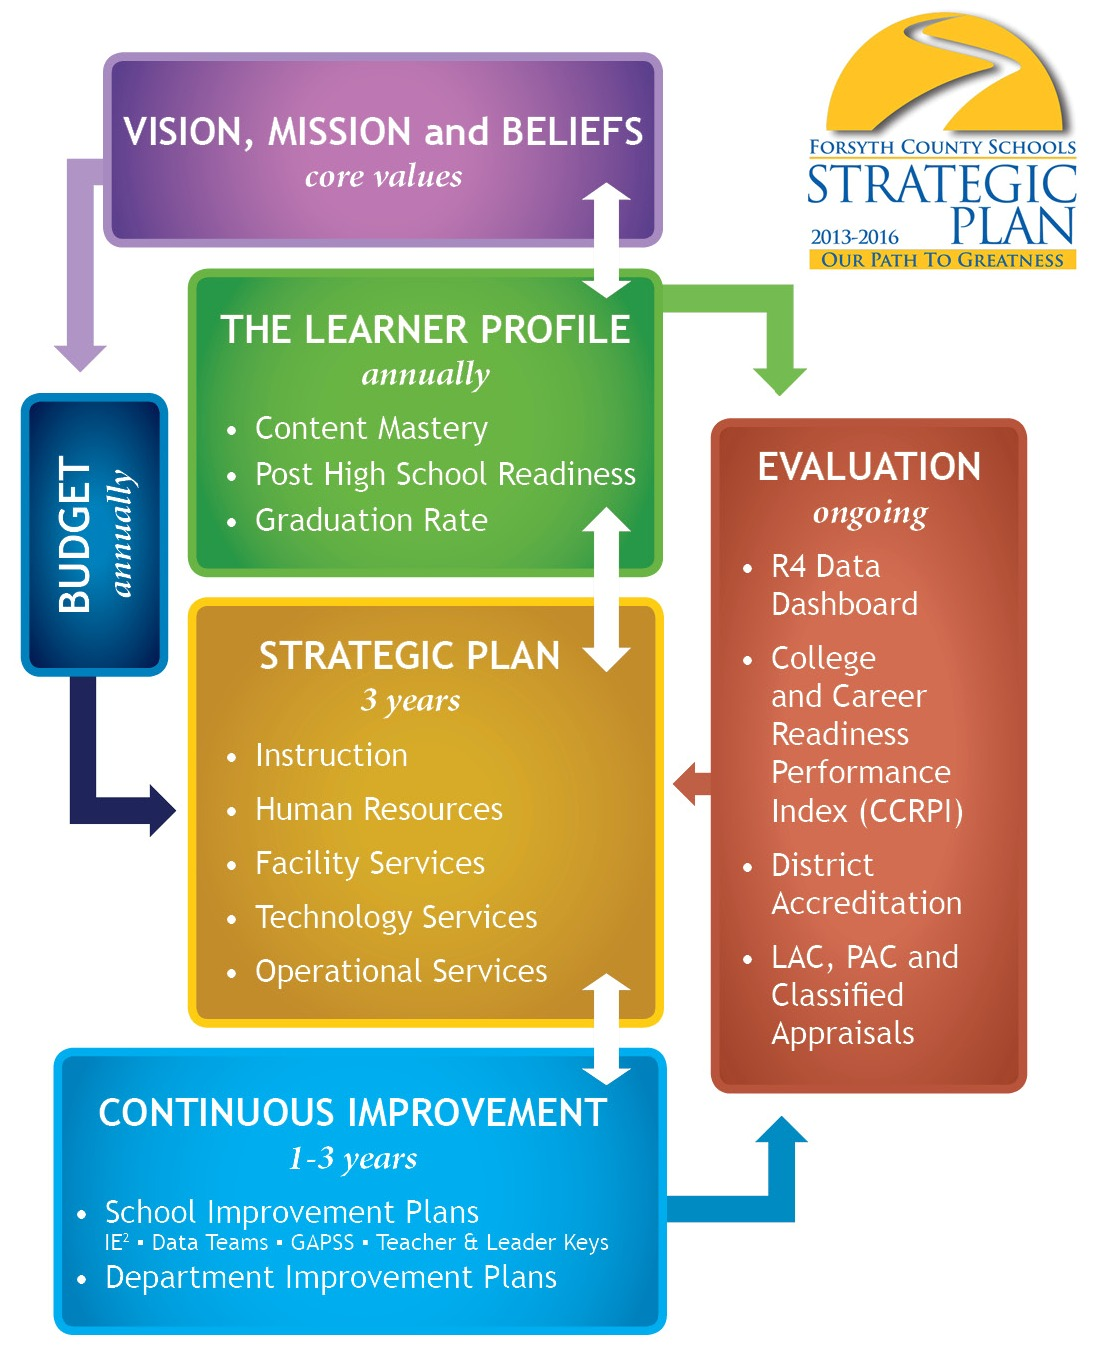 strategic planning framework diagram 2001 mustang parts samples of plans the wineinger company